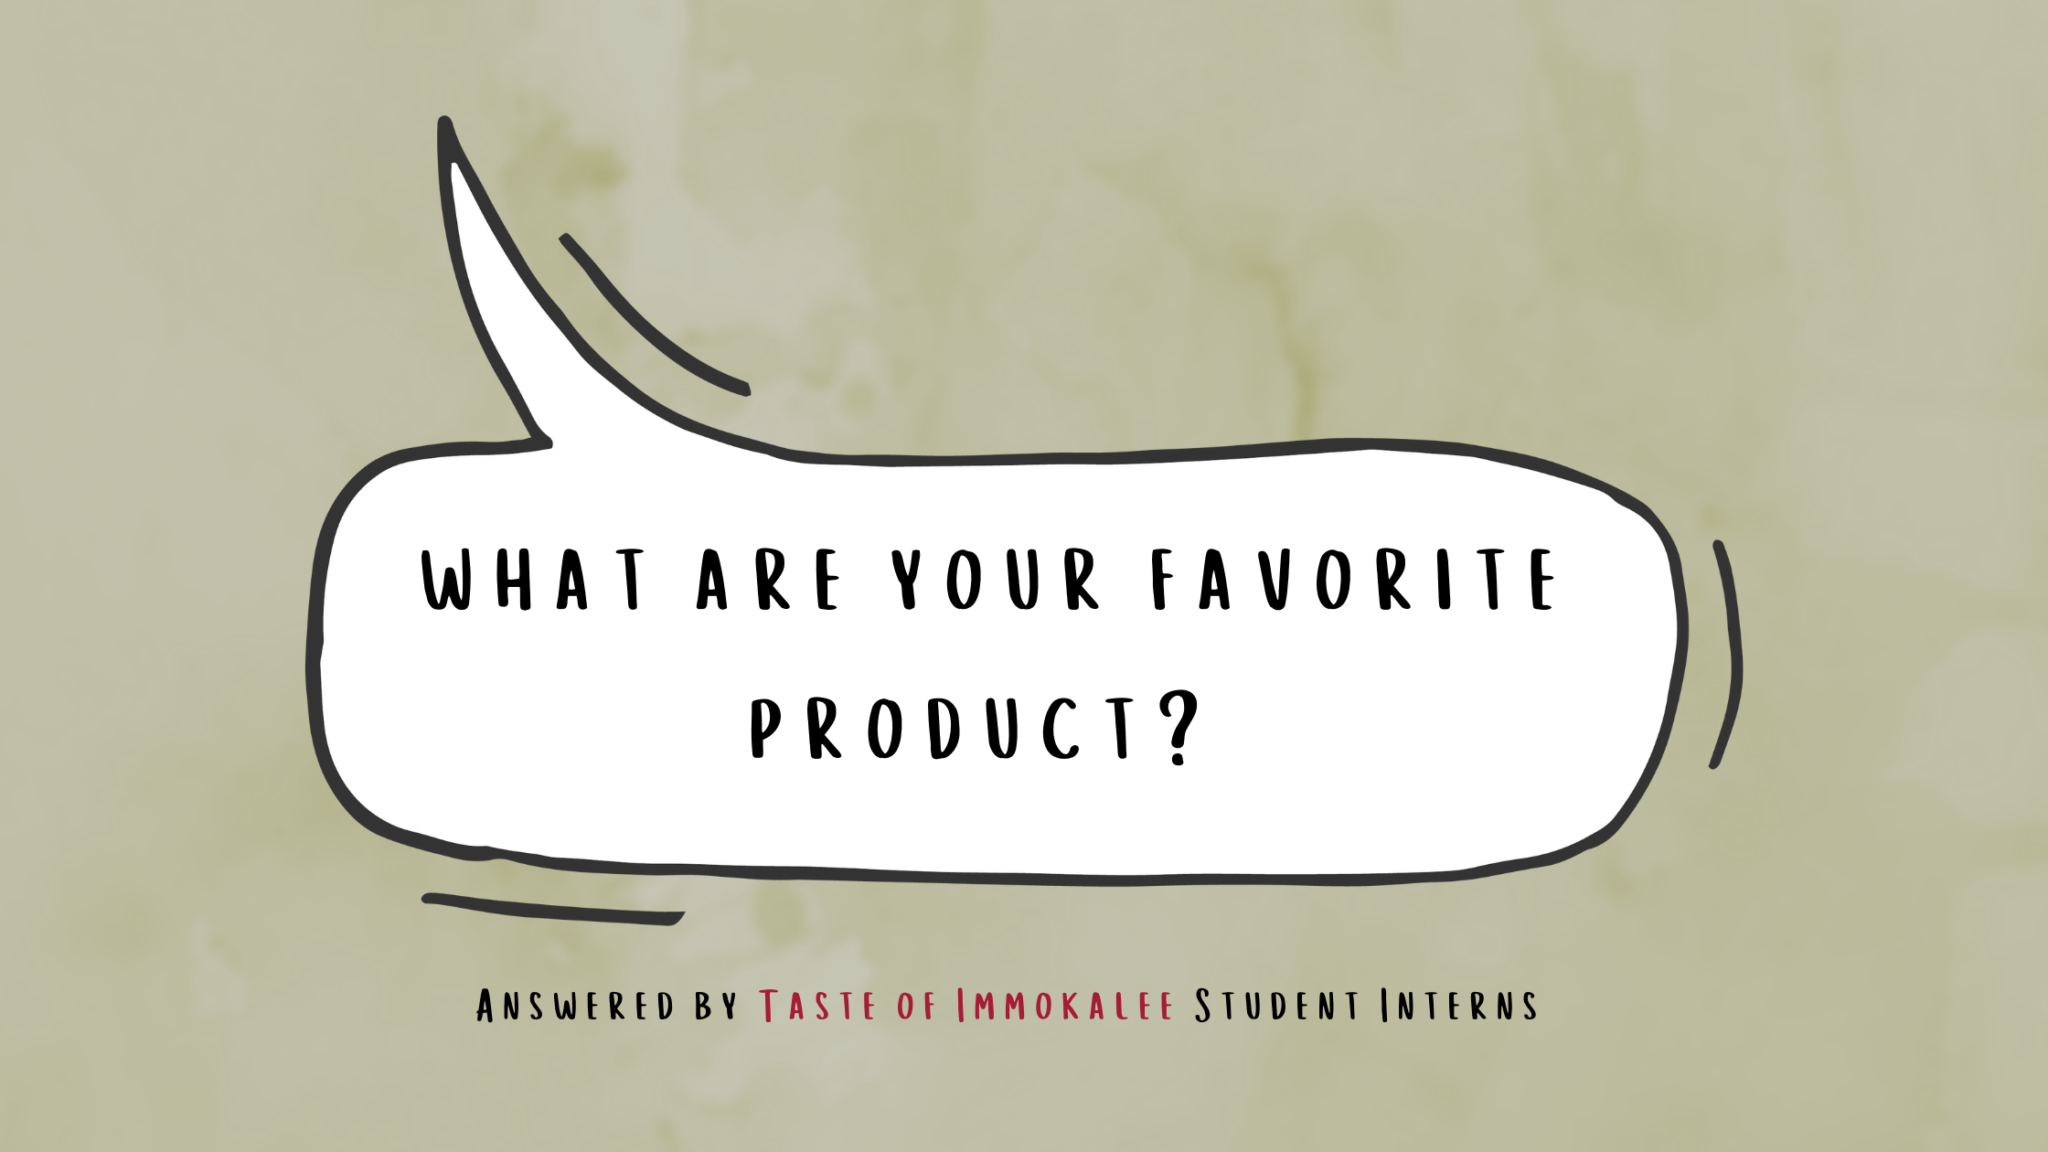 Whats-your-favorite-product